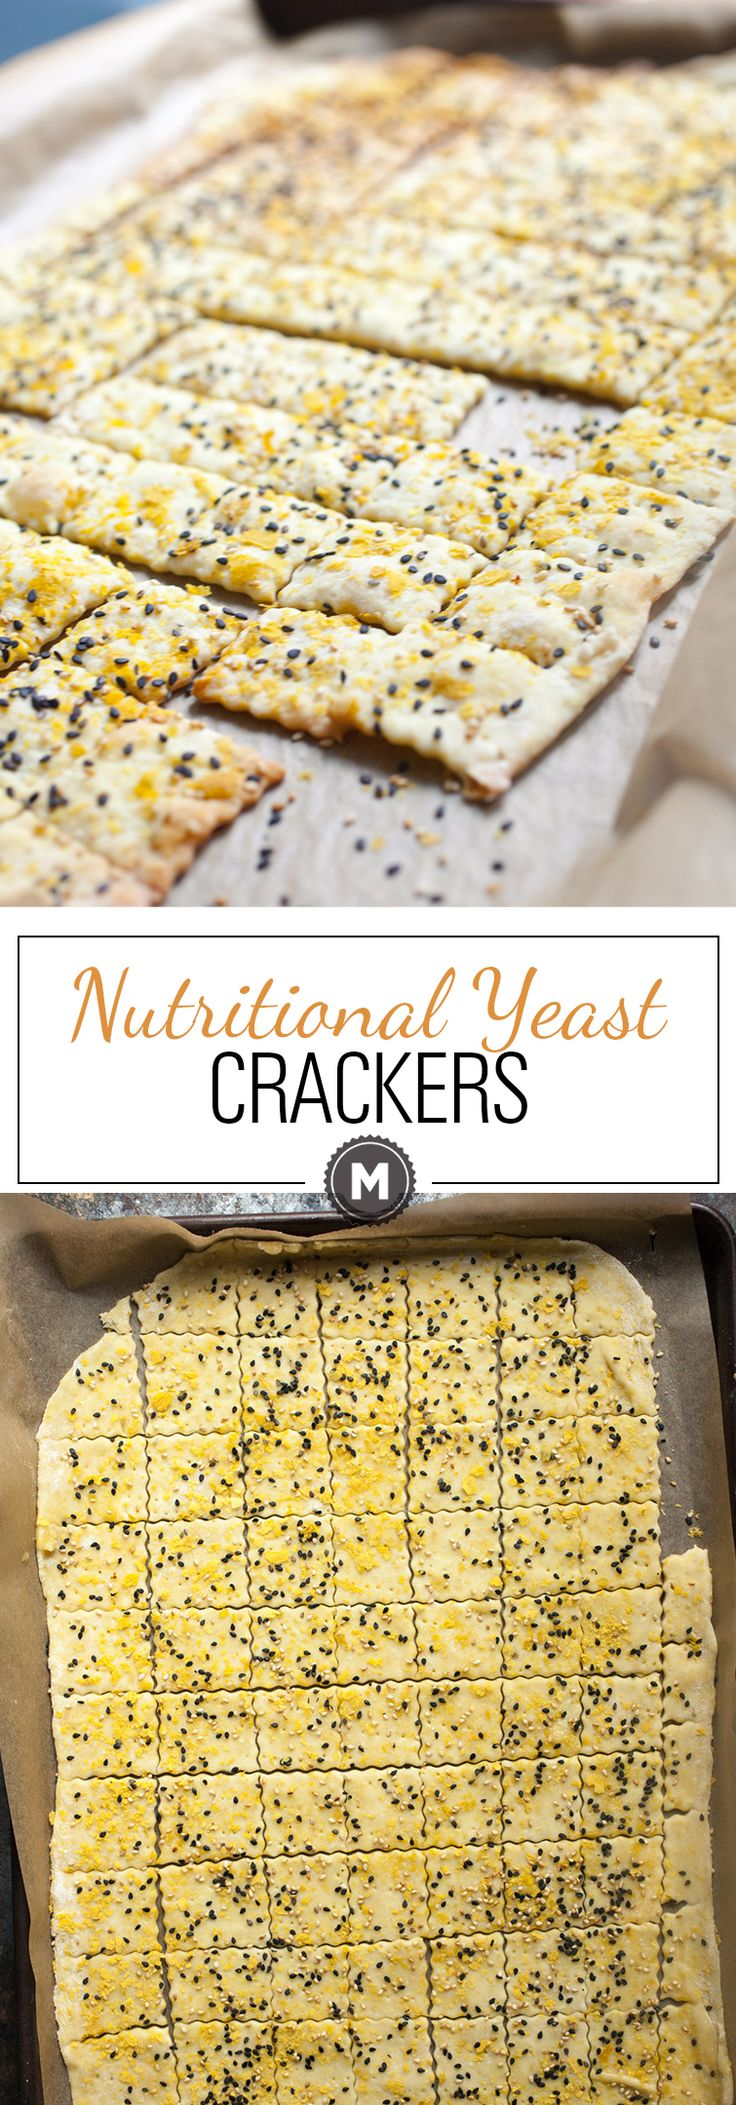 Can't-Stop Crackers: These nutritional yeast crackers are savory, crispy, and SO addictive. Make a double batch because they going to go fast. As in, once you start eating them, you won't stop! | macheesmo.com